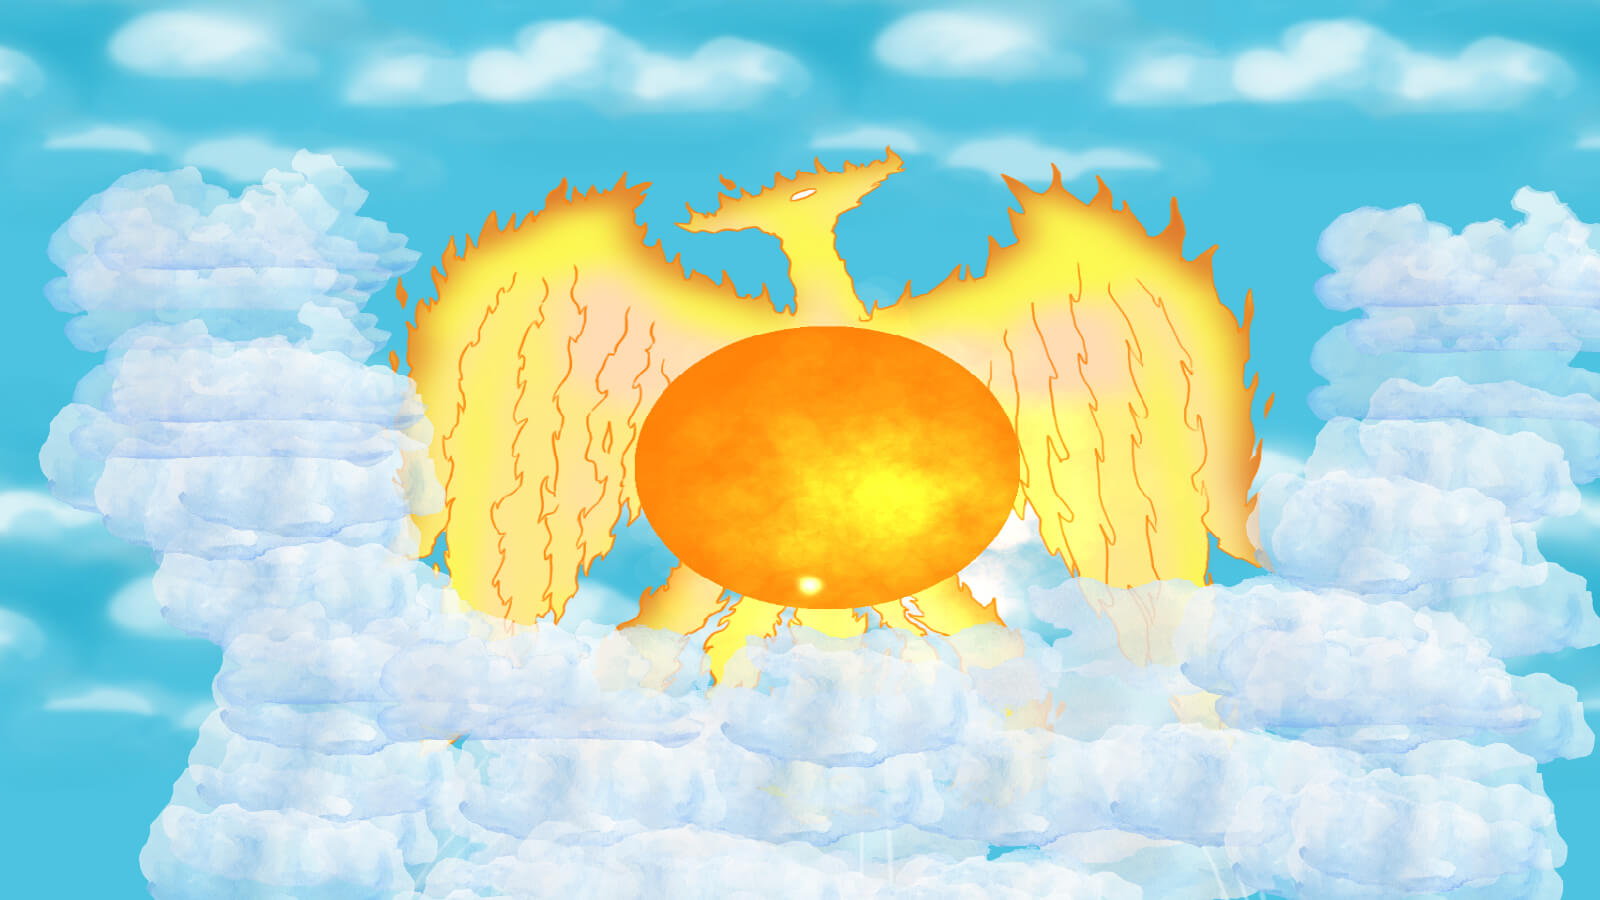 A phoenix in the clouds with a large sun-like orb in front of it.